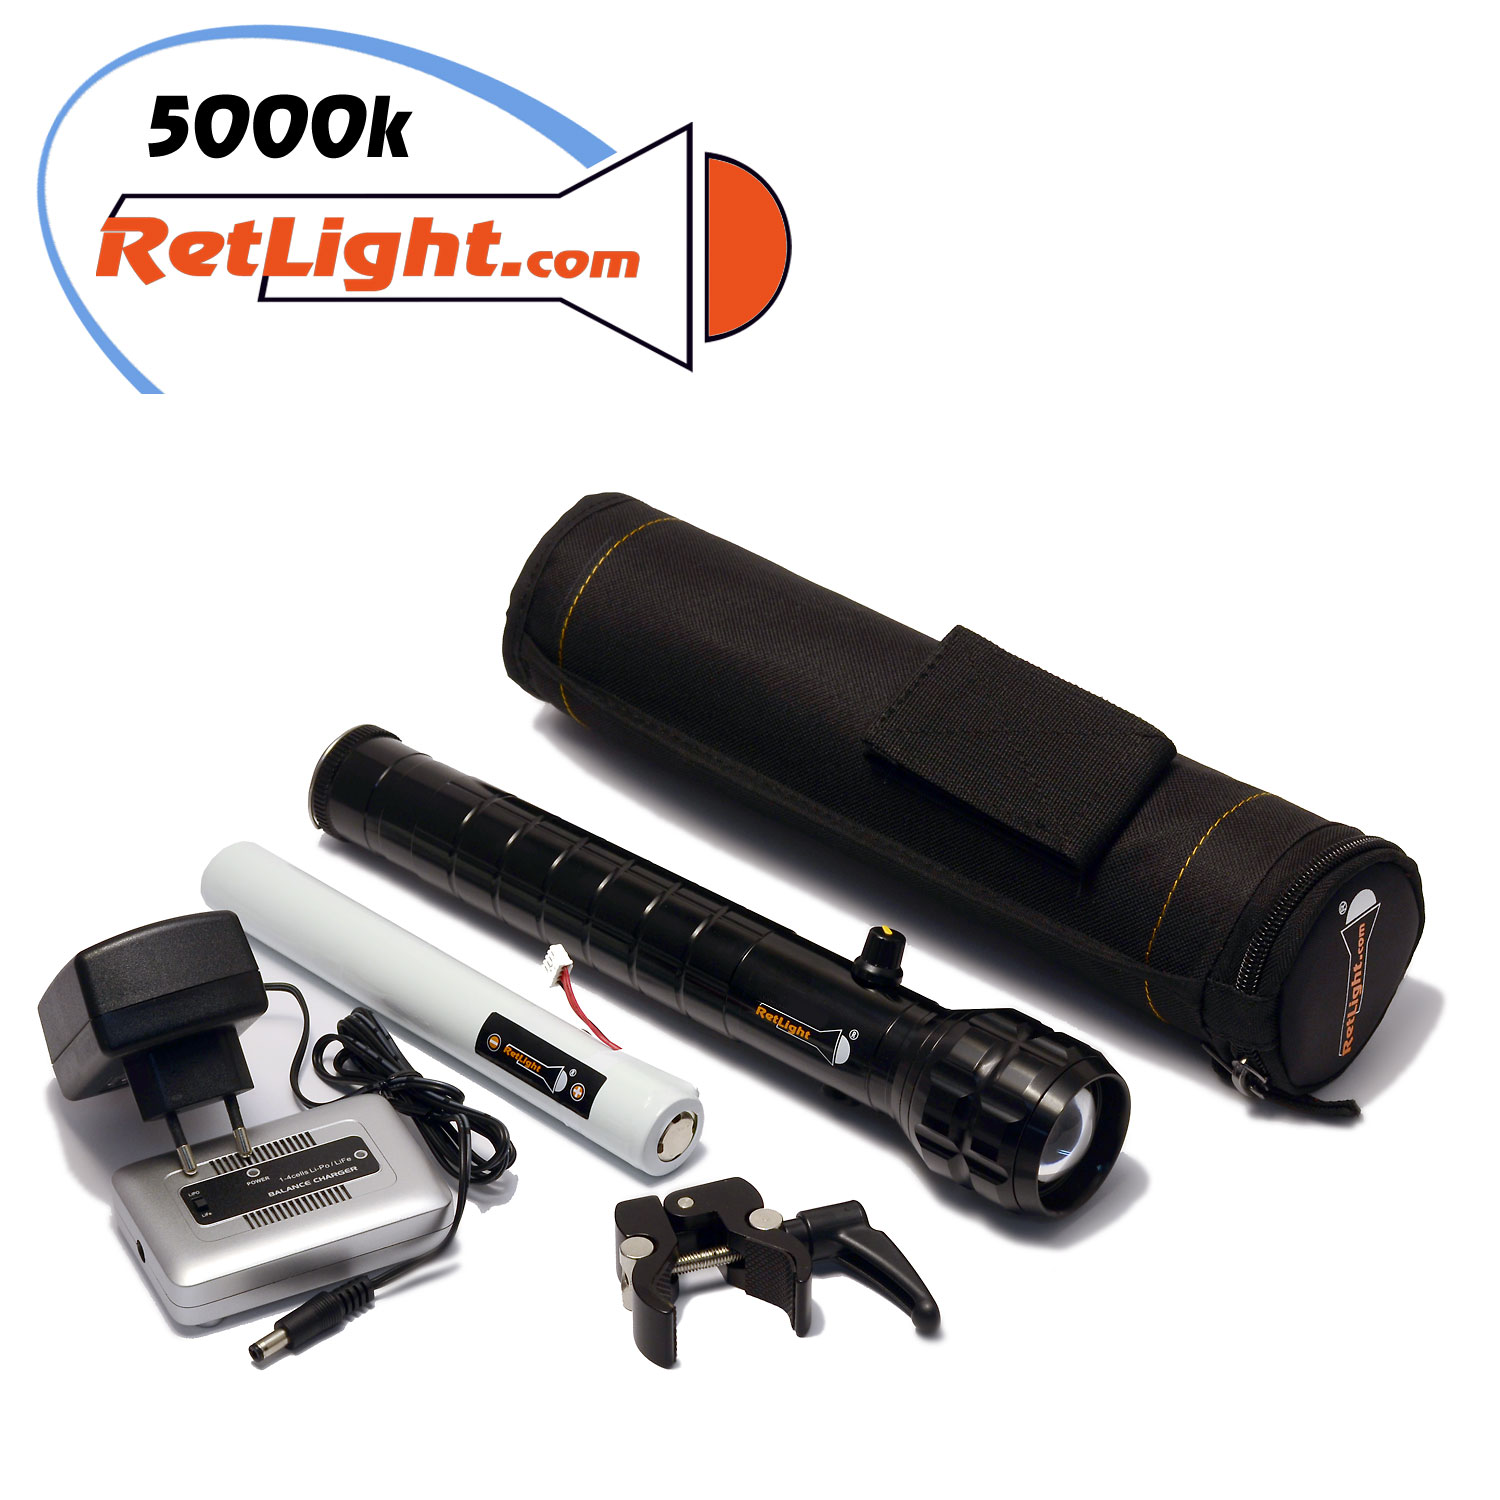 Kit RetLight №5 5000K Catalog